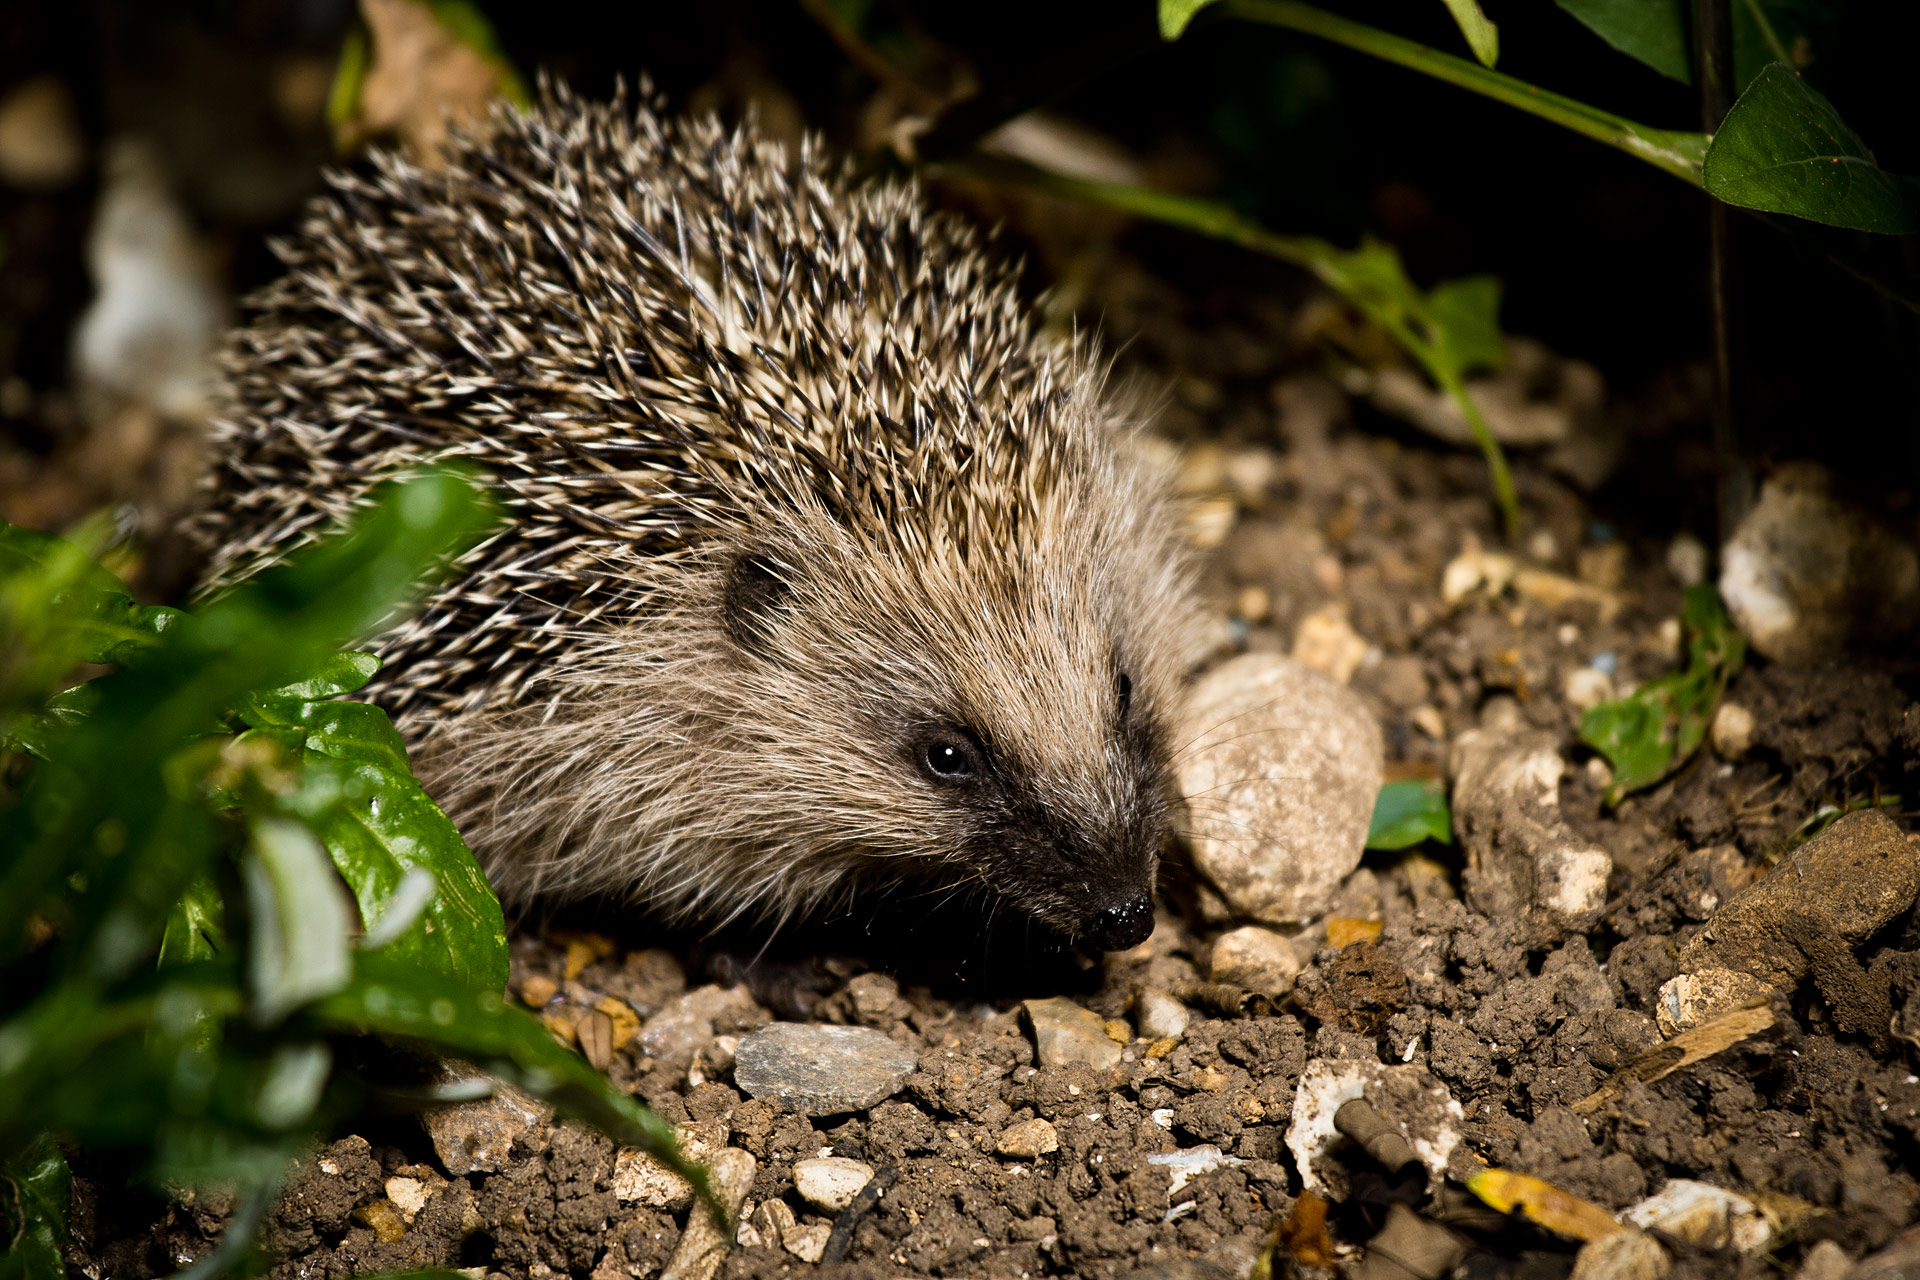 Hedgehog by flash